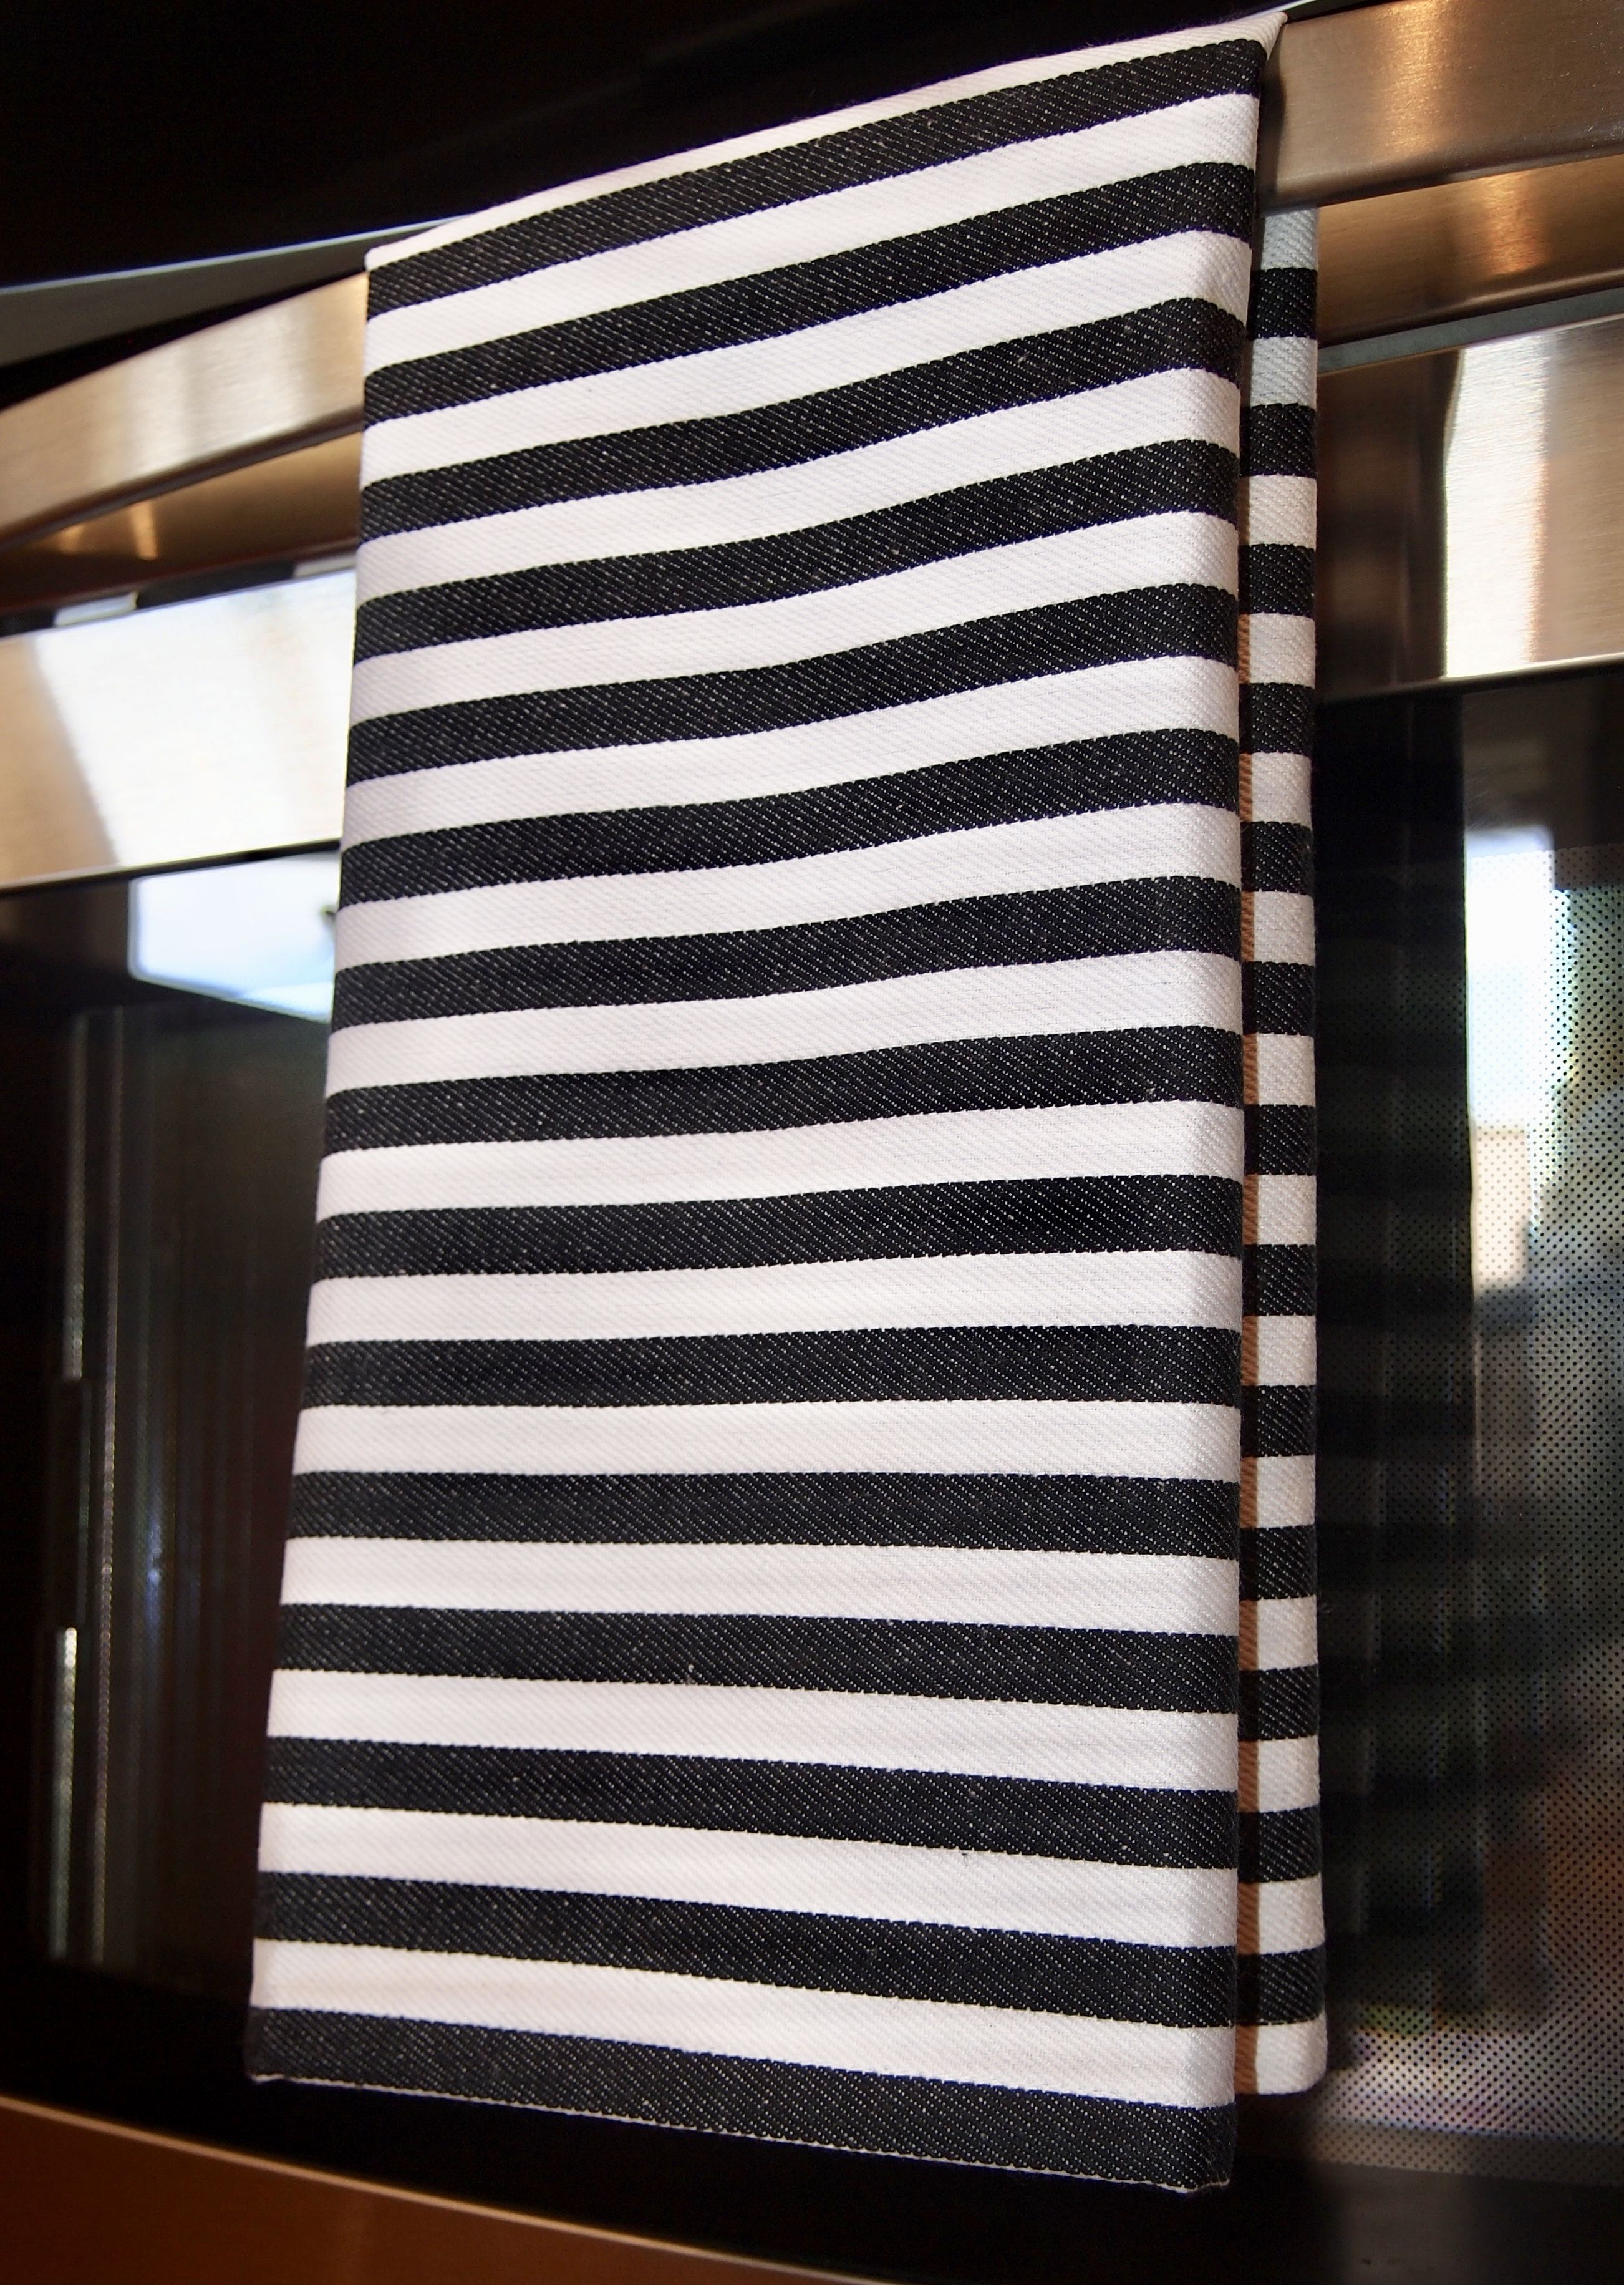 Classic Black And White Striped Kitchen Tea Towels Set Of 3 100